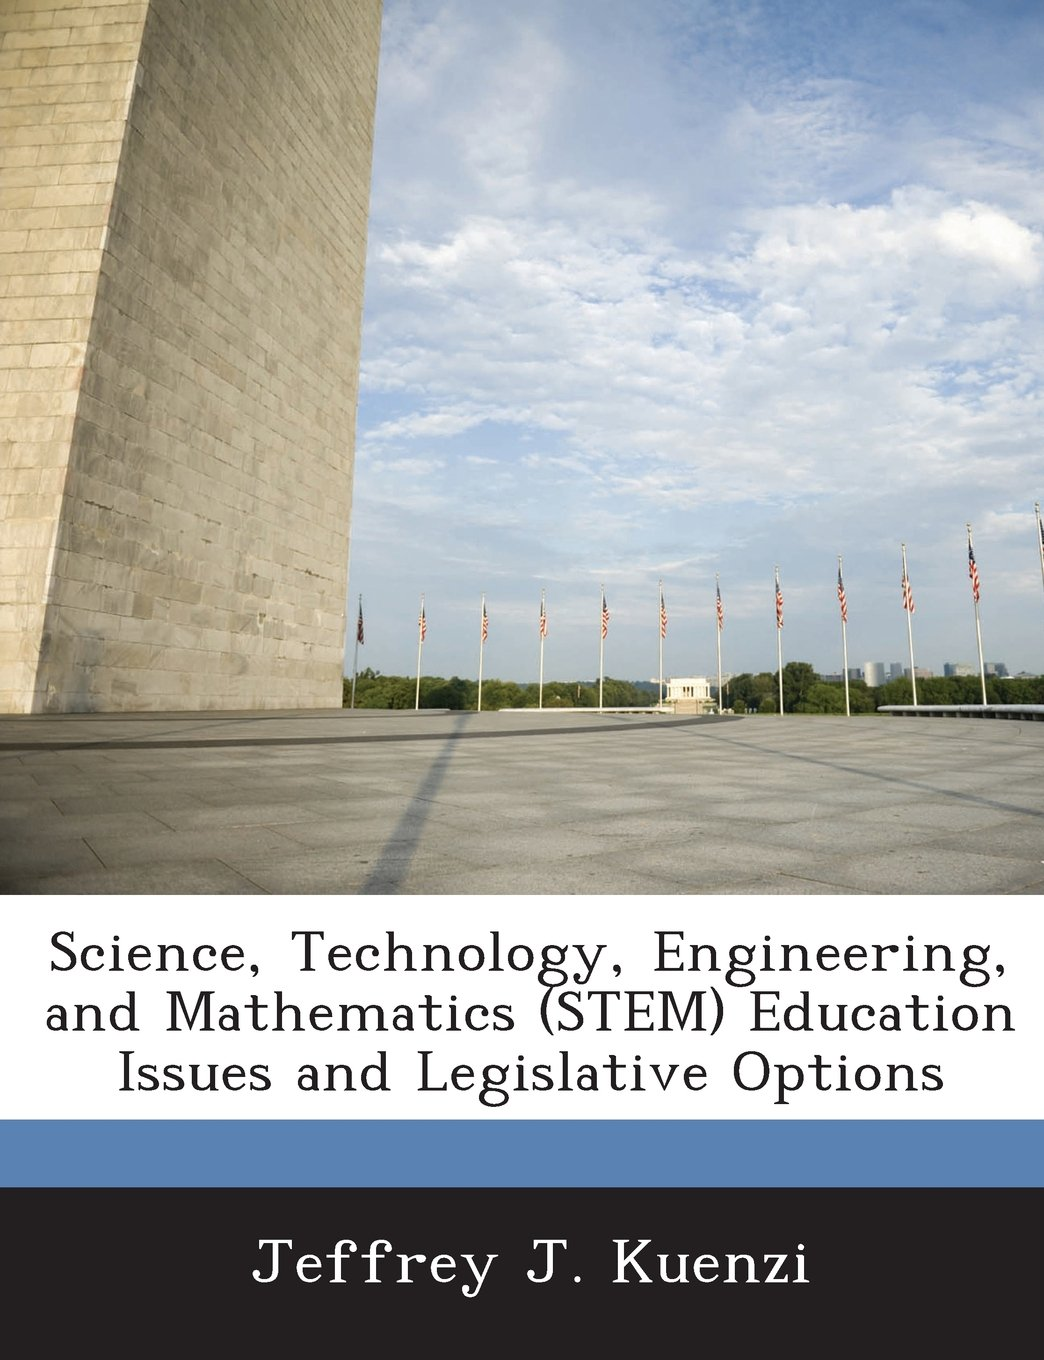 Download Science, Technology, Engineering, and Mathematics (STEM) Education Issues and Legislative Options pdf epub